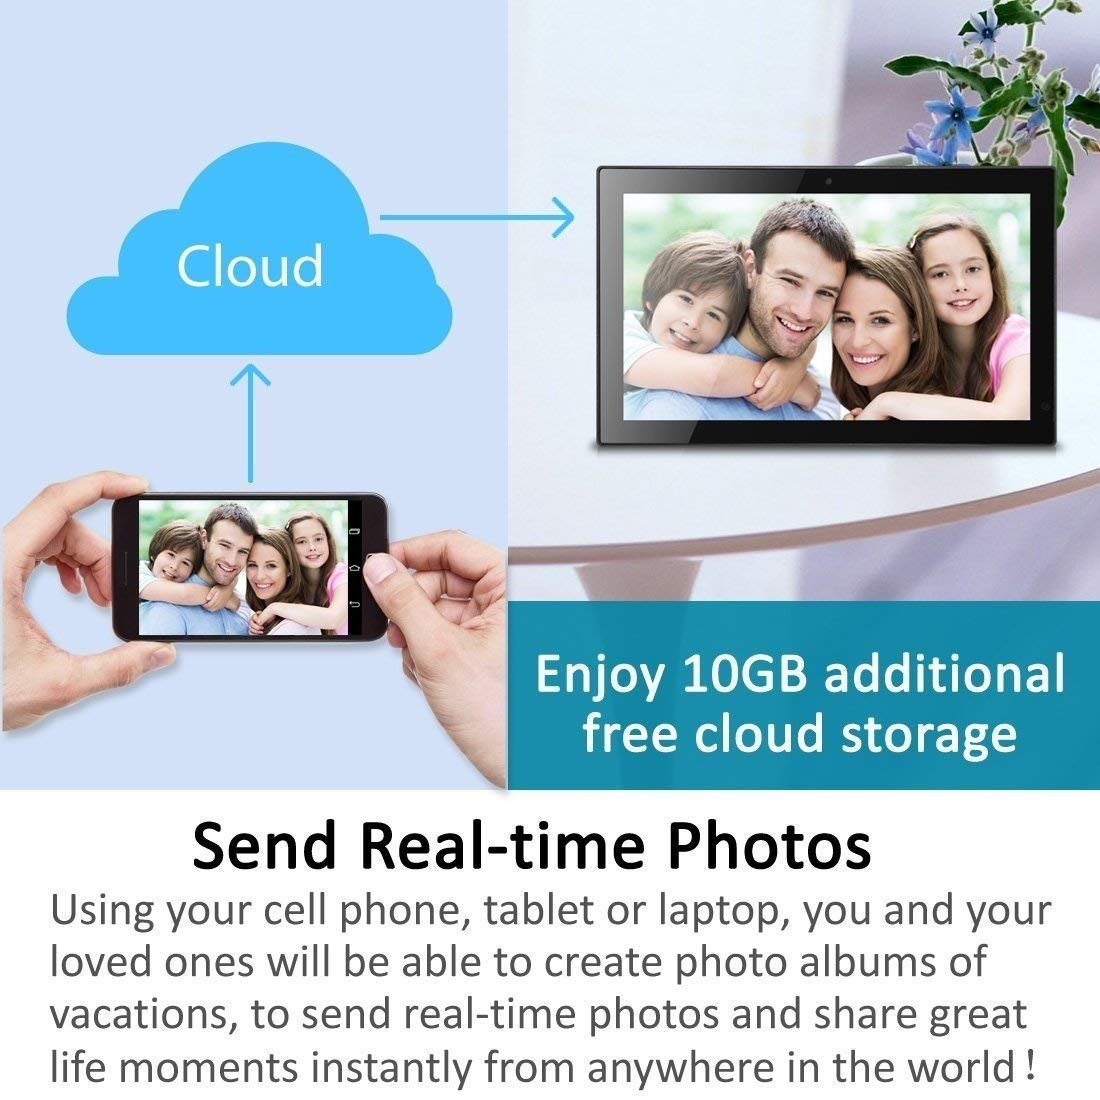 19'' WiFi Cloud Frame with Remote Control, 20GB Free Cloud Storage, Music, Movie, Social Media, Wall mountable by Sungale (Image #4)